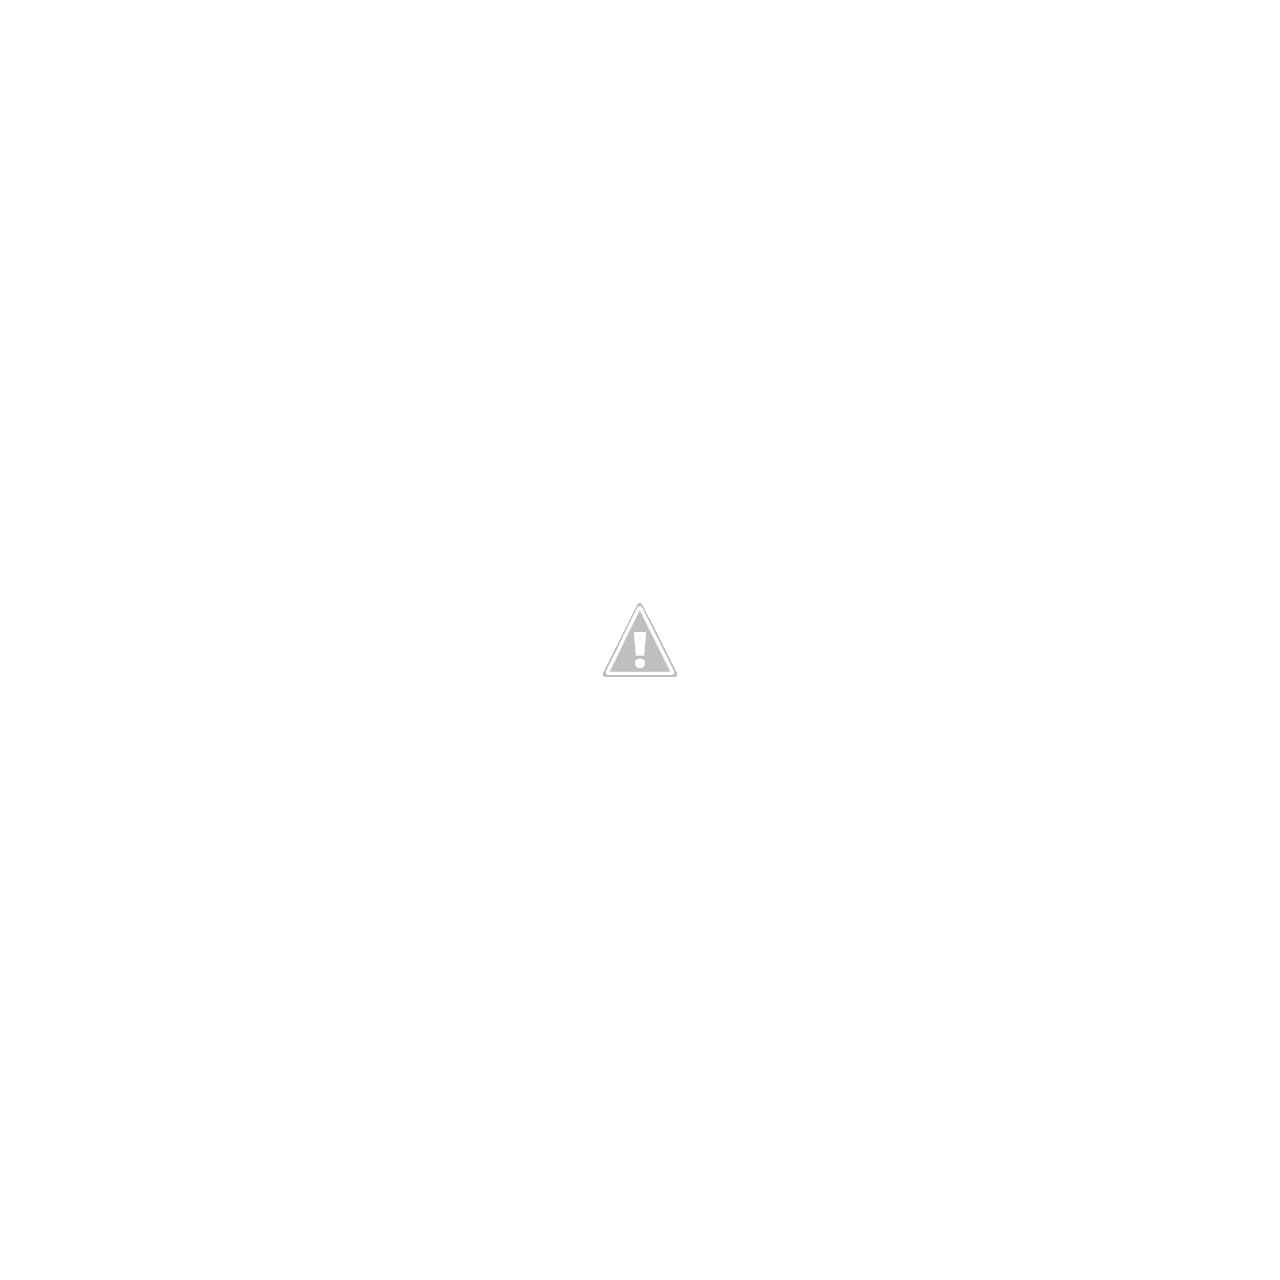 Cctv Camera Hik Vision Panasonic - Security System Supplier